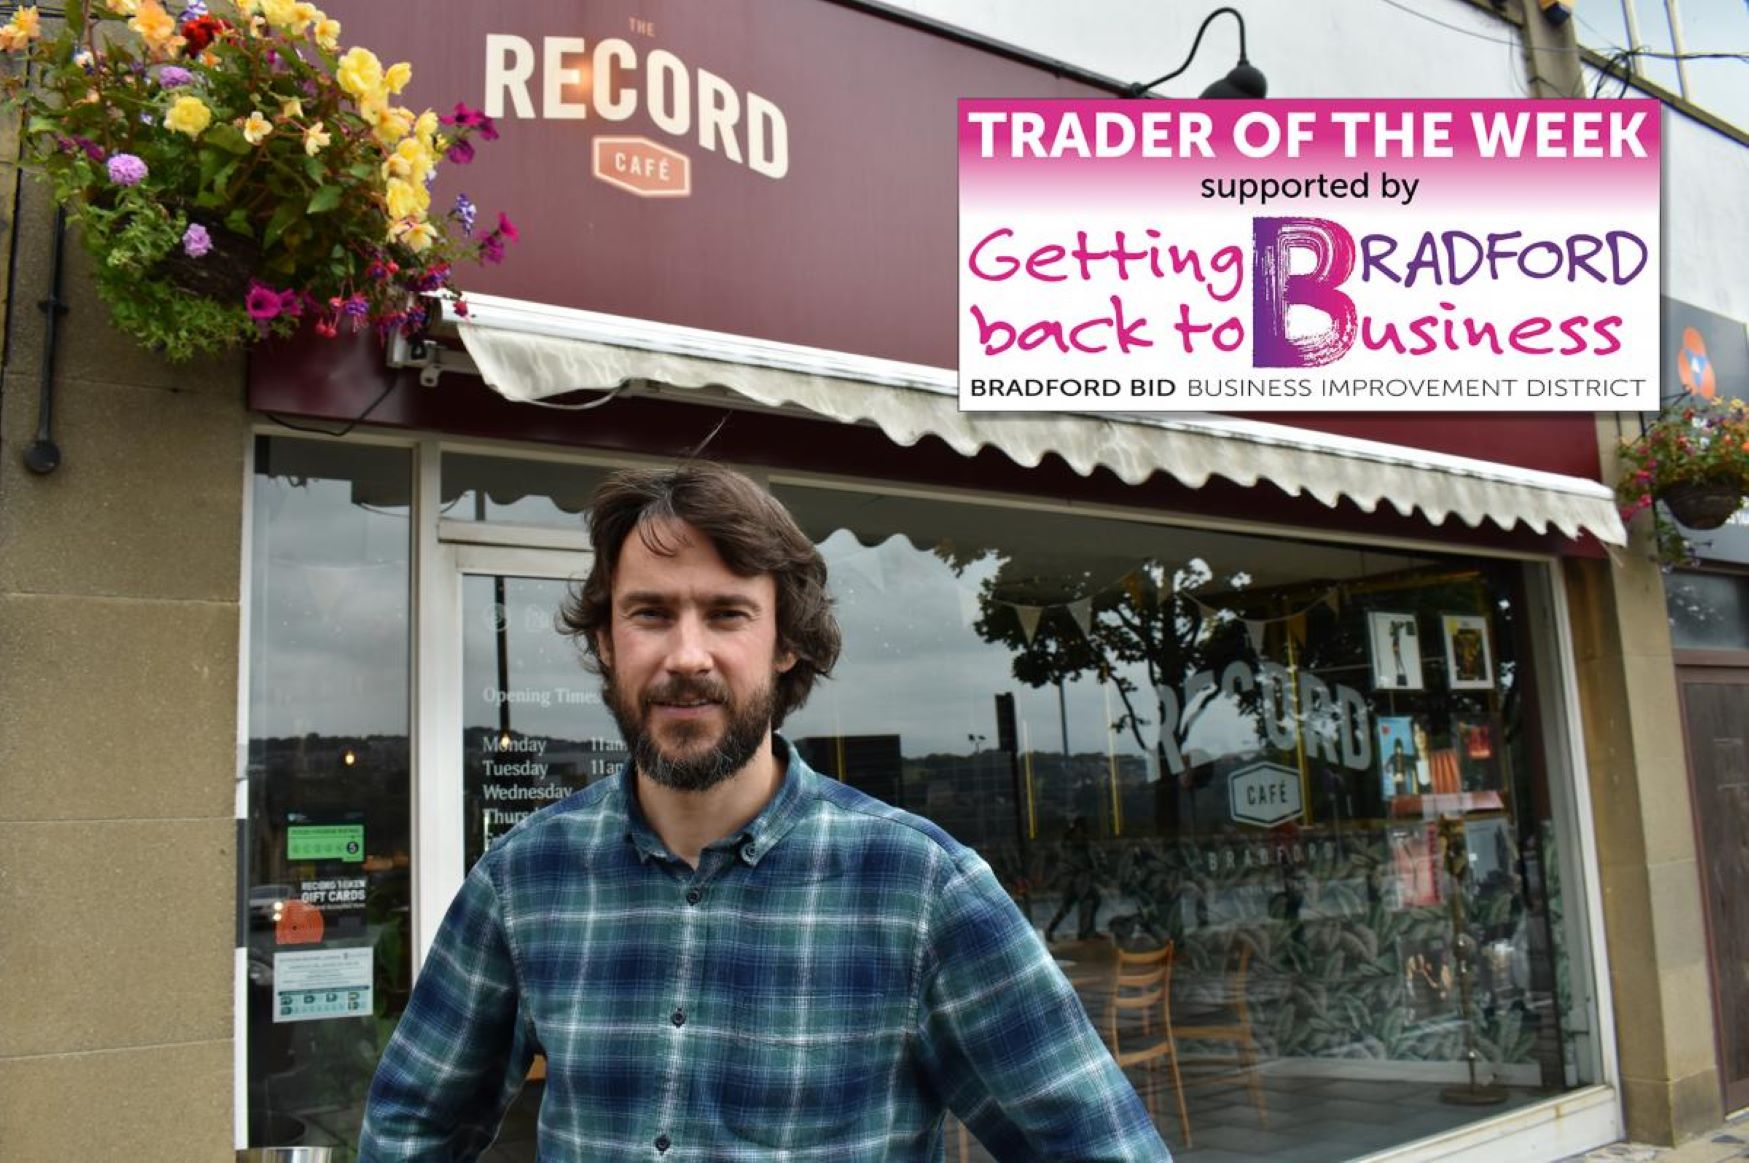 Trader of the Week – Record Cafe